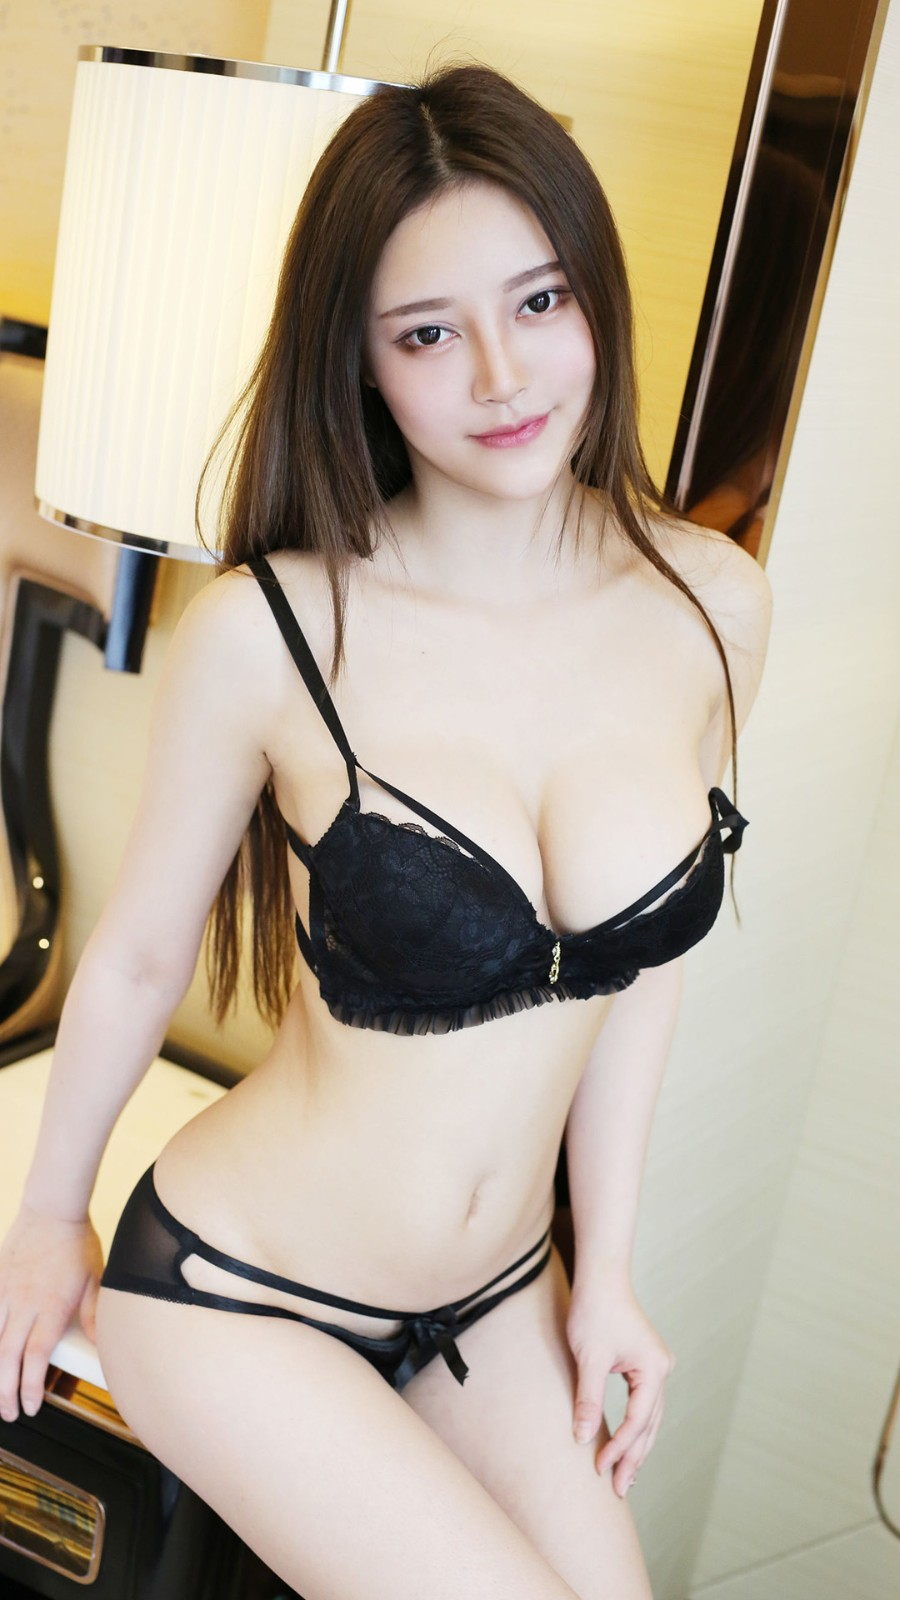 4 Asian Girls 🌈💜 Newcomers 💜🌈 Sexy Young 💜🌈💜 outcall incall